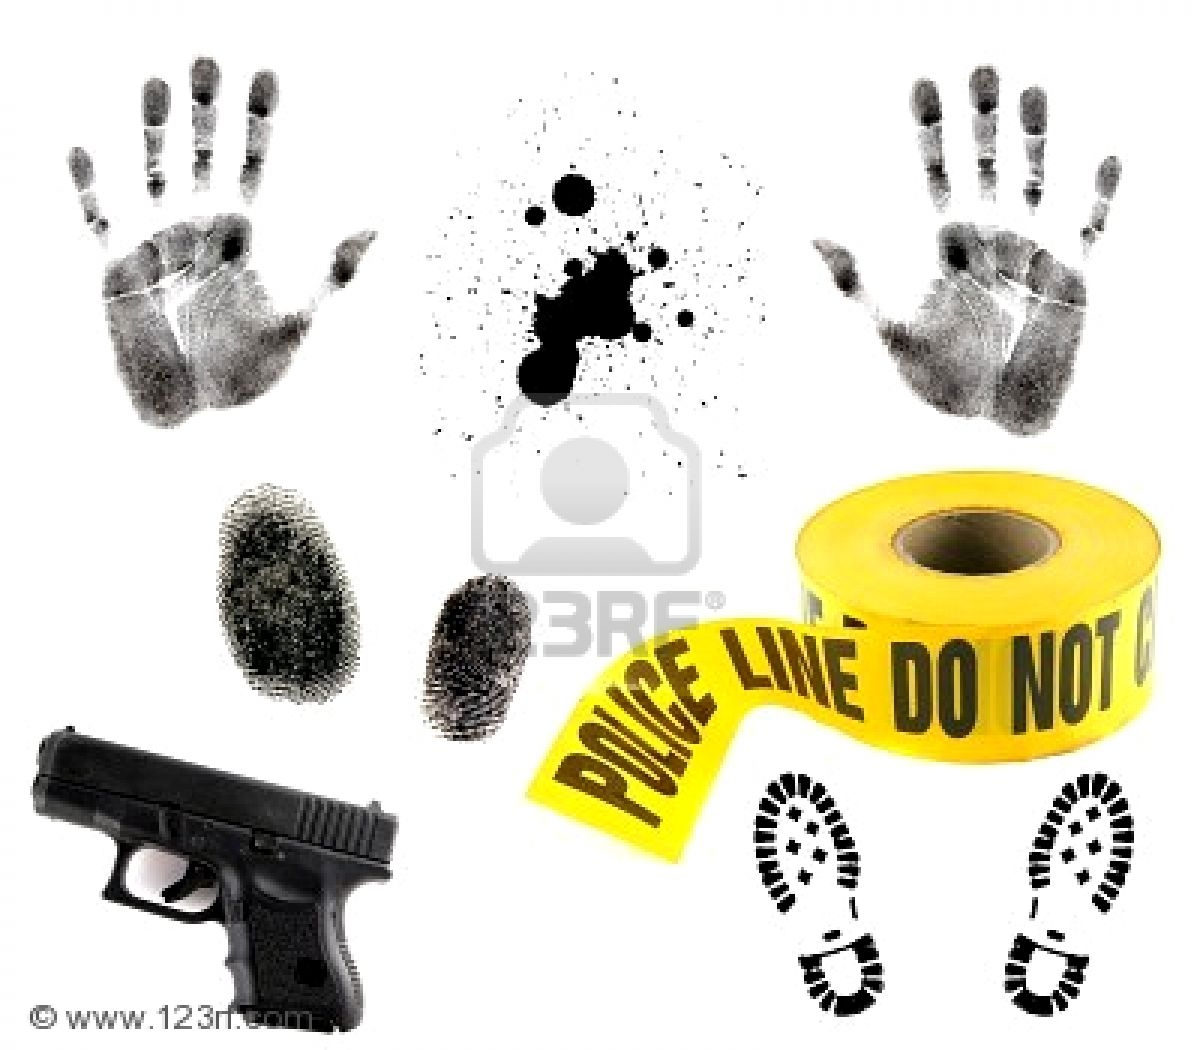 Crime scene investigation clipart vector black and white Crime Scene Clipart Group with 81+ items vector black and white